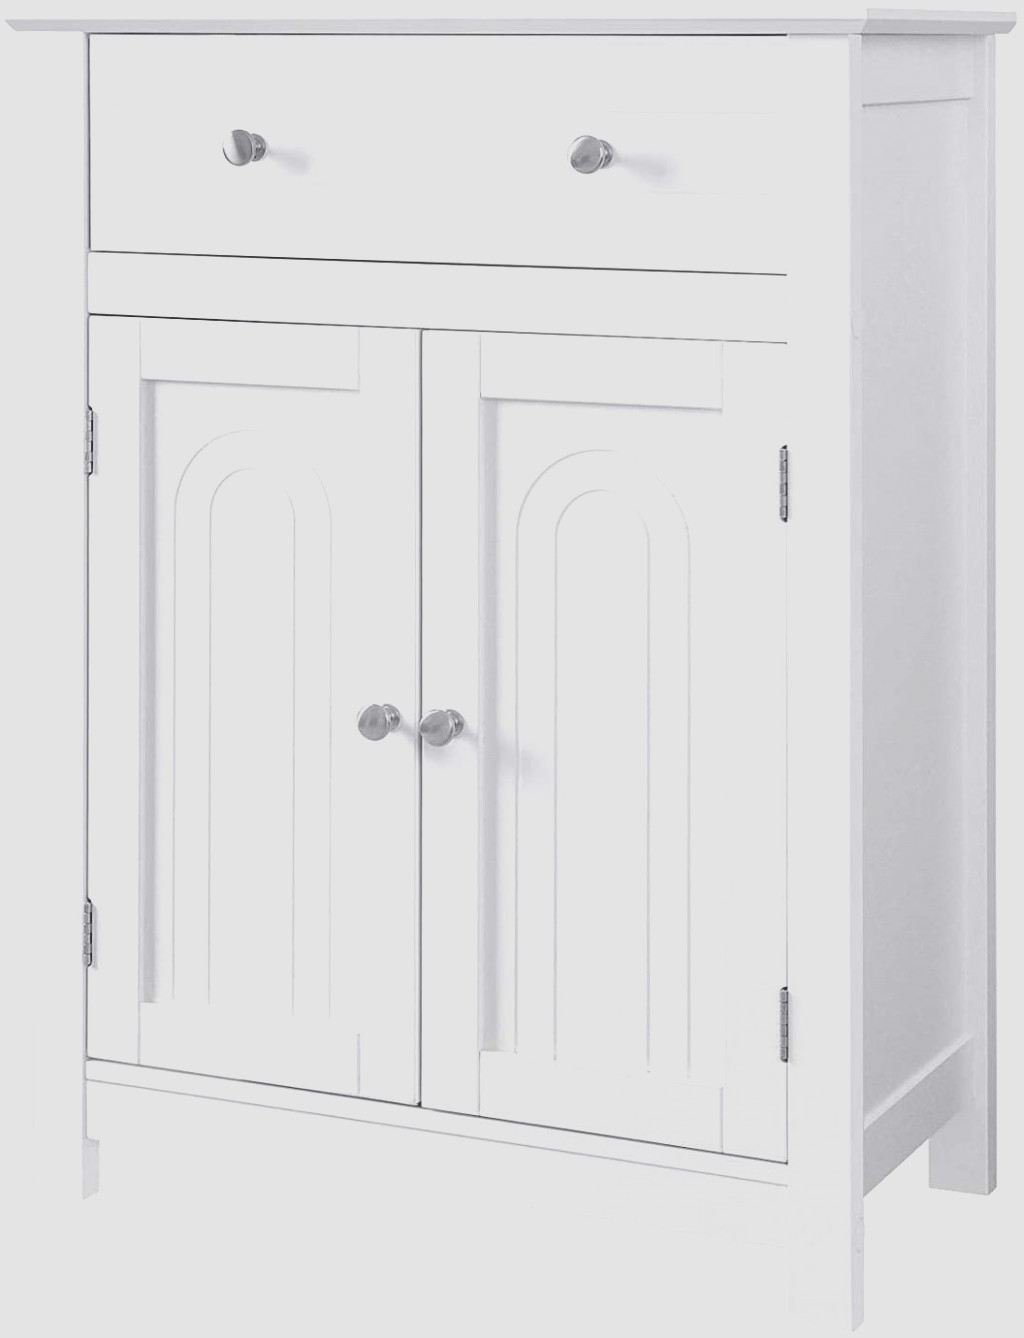 Free Standing Bathroom Cabinets Amazon